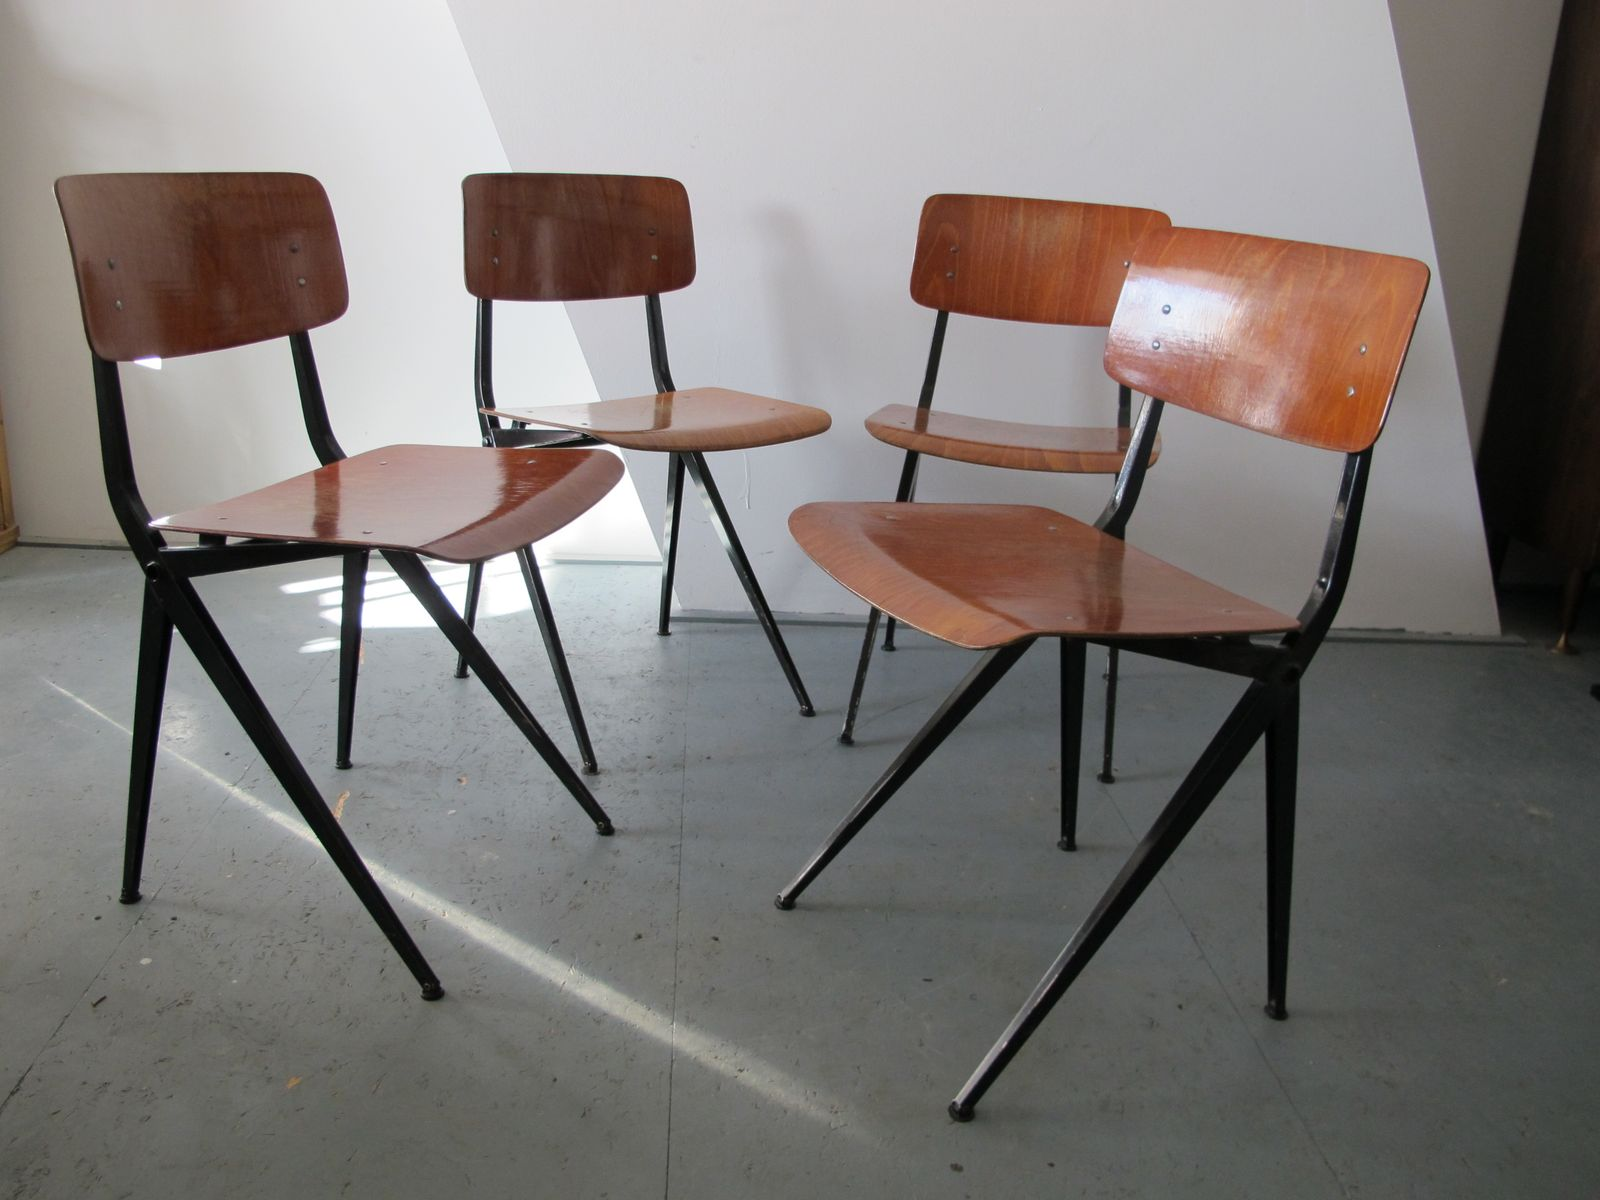 Mid Century Industrial Steel and Wood Chairs from Marko Set of 4